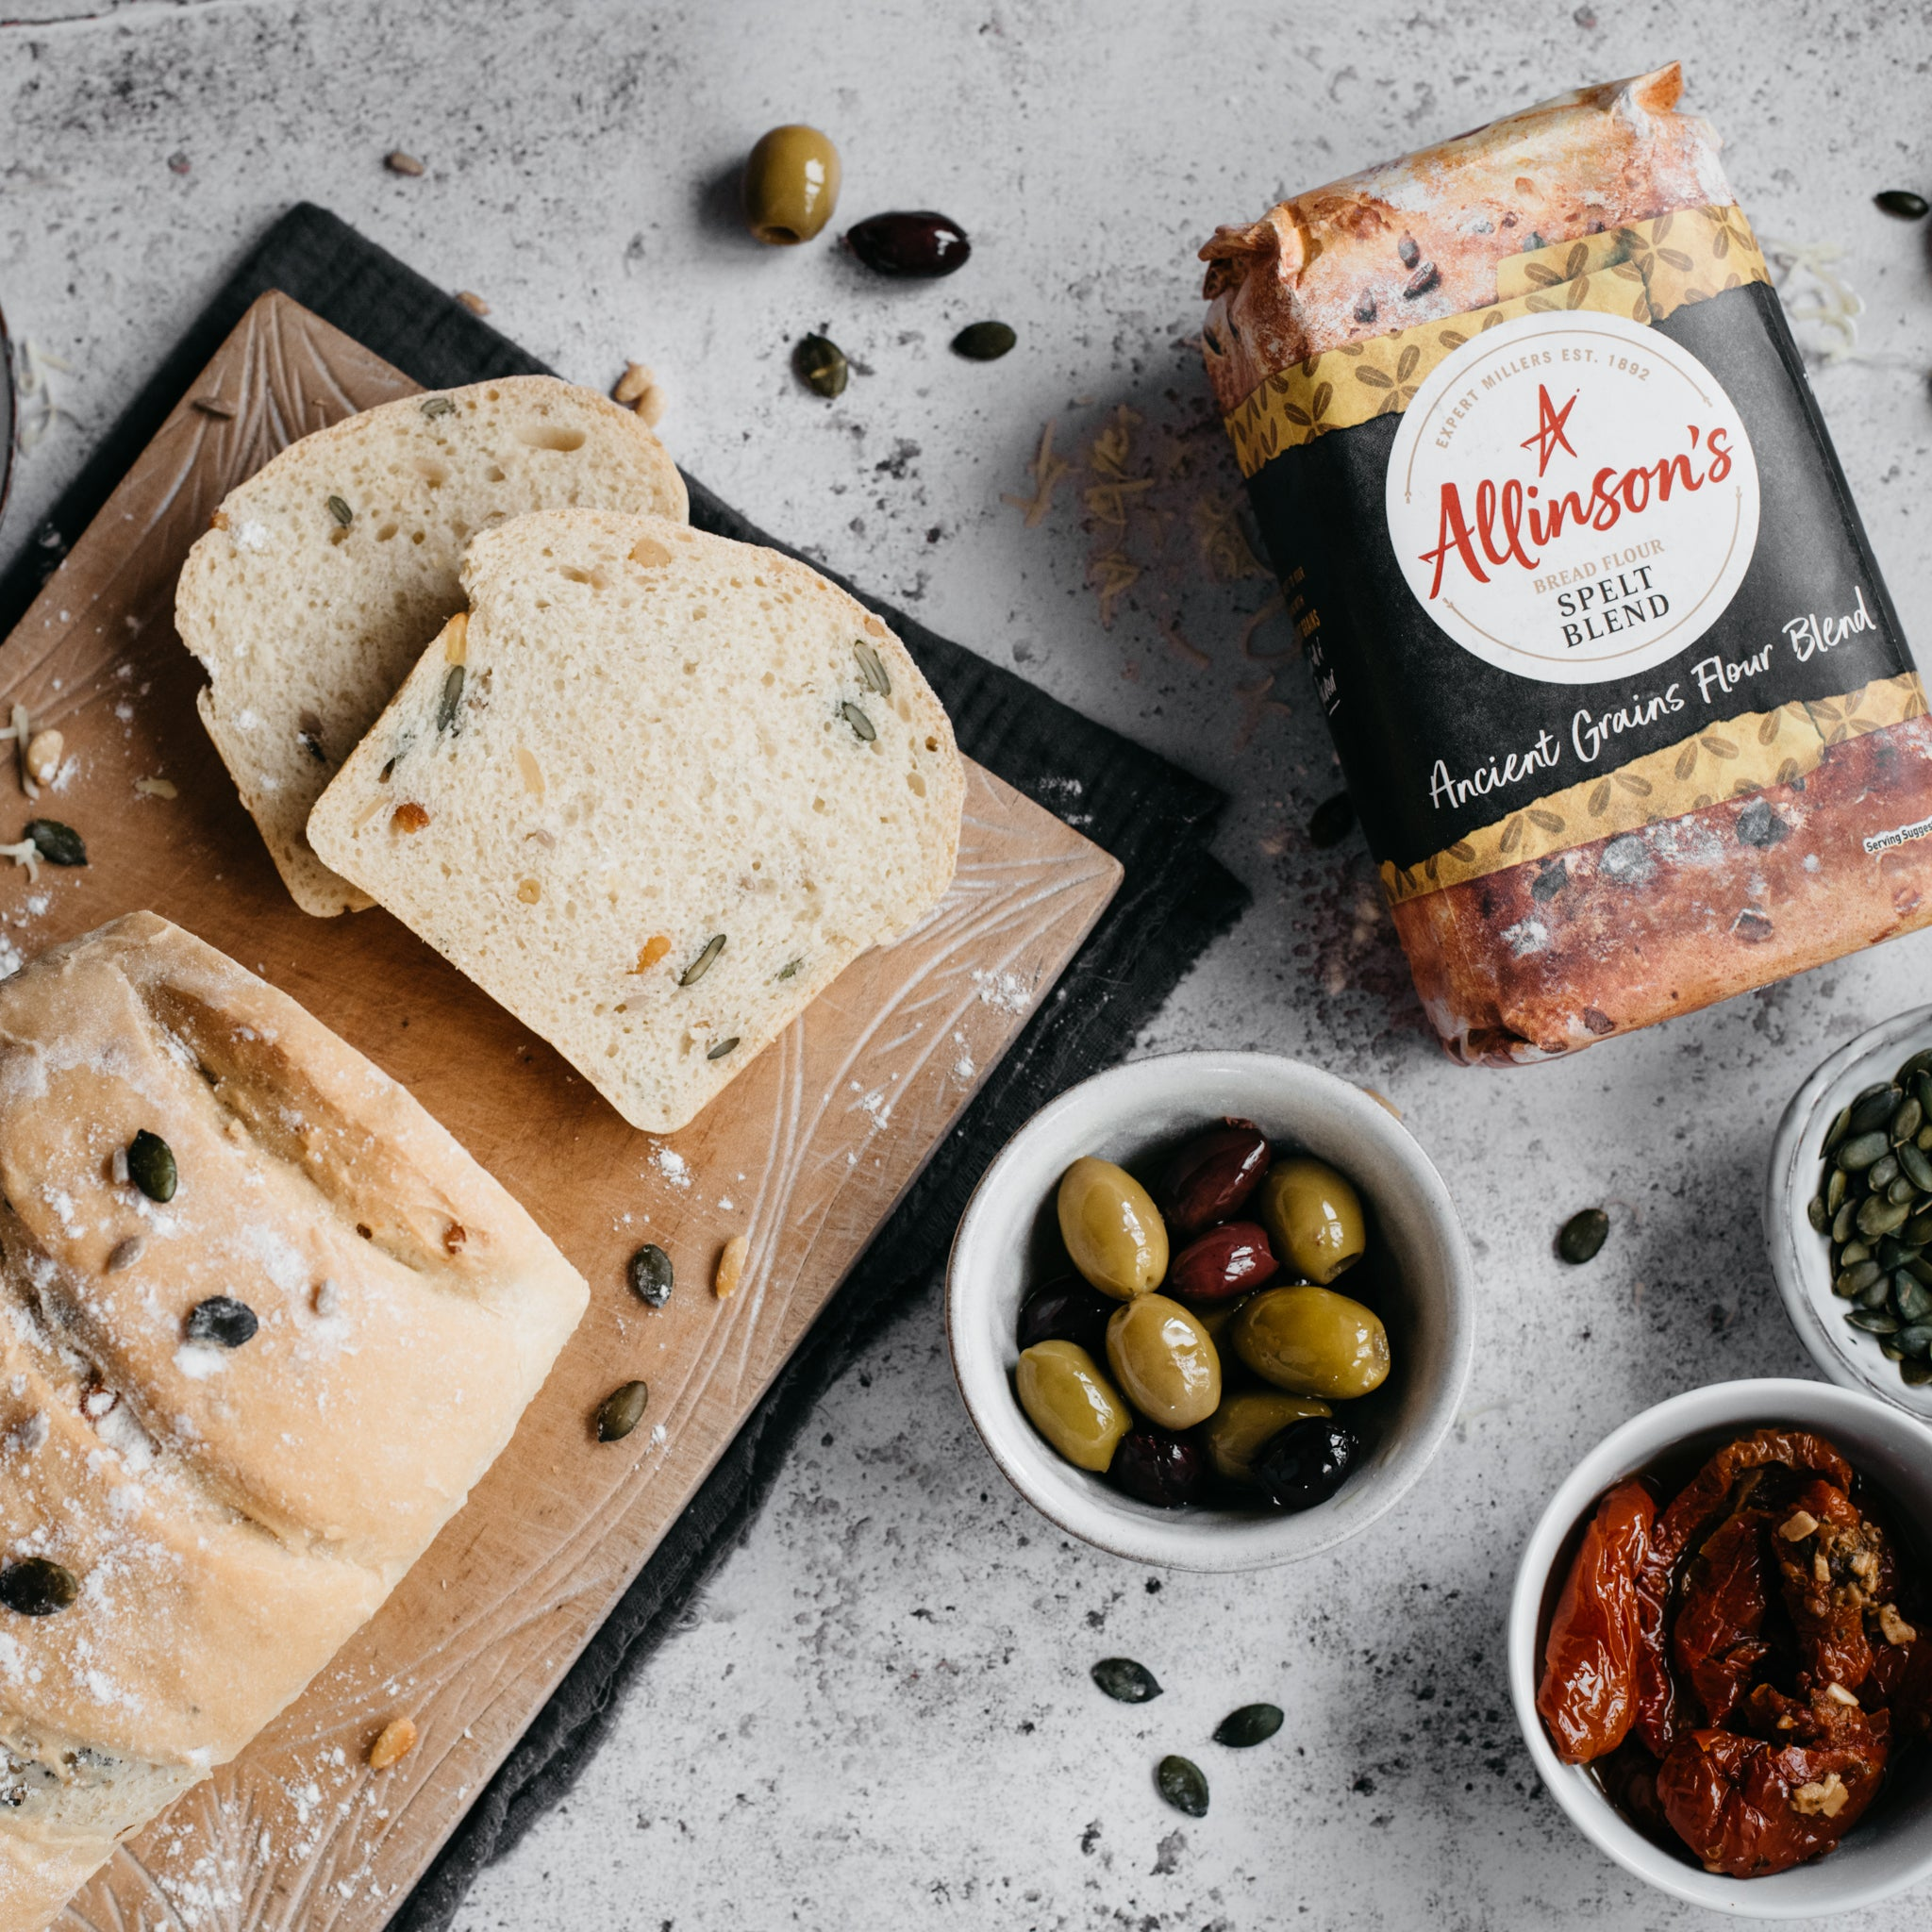 Overhead shot of spelt loaf with two slices in front, bread flour, olives and tomatoes